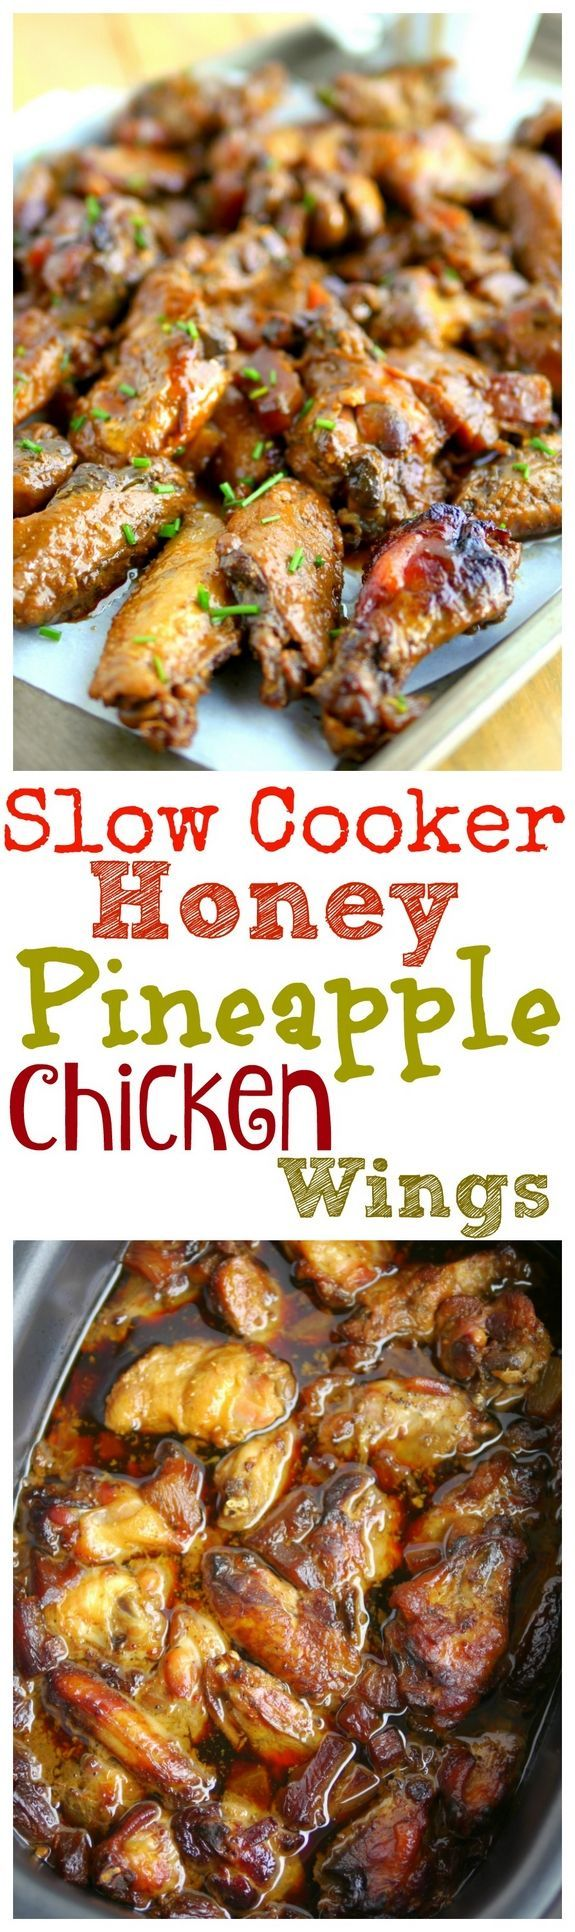 Slow Cooker Honey Pineapple Chicken Wings are your perfect Game Day appetizer, from http://NoblePig.com.